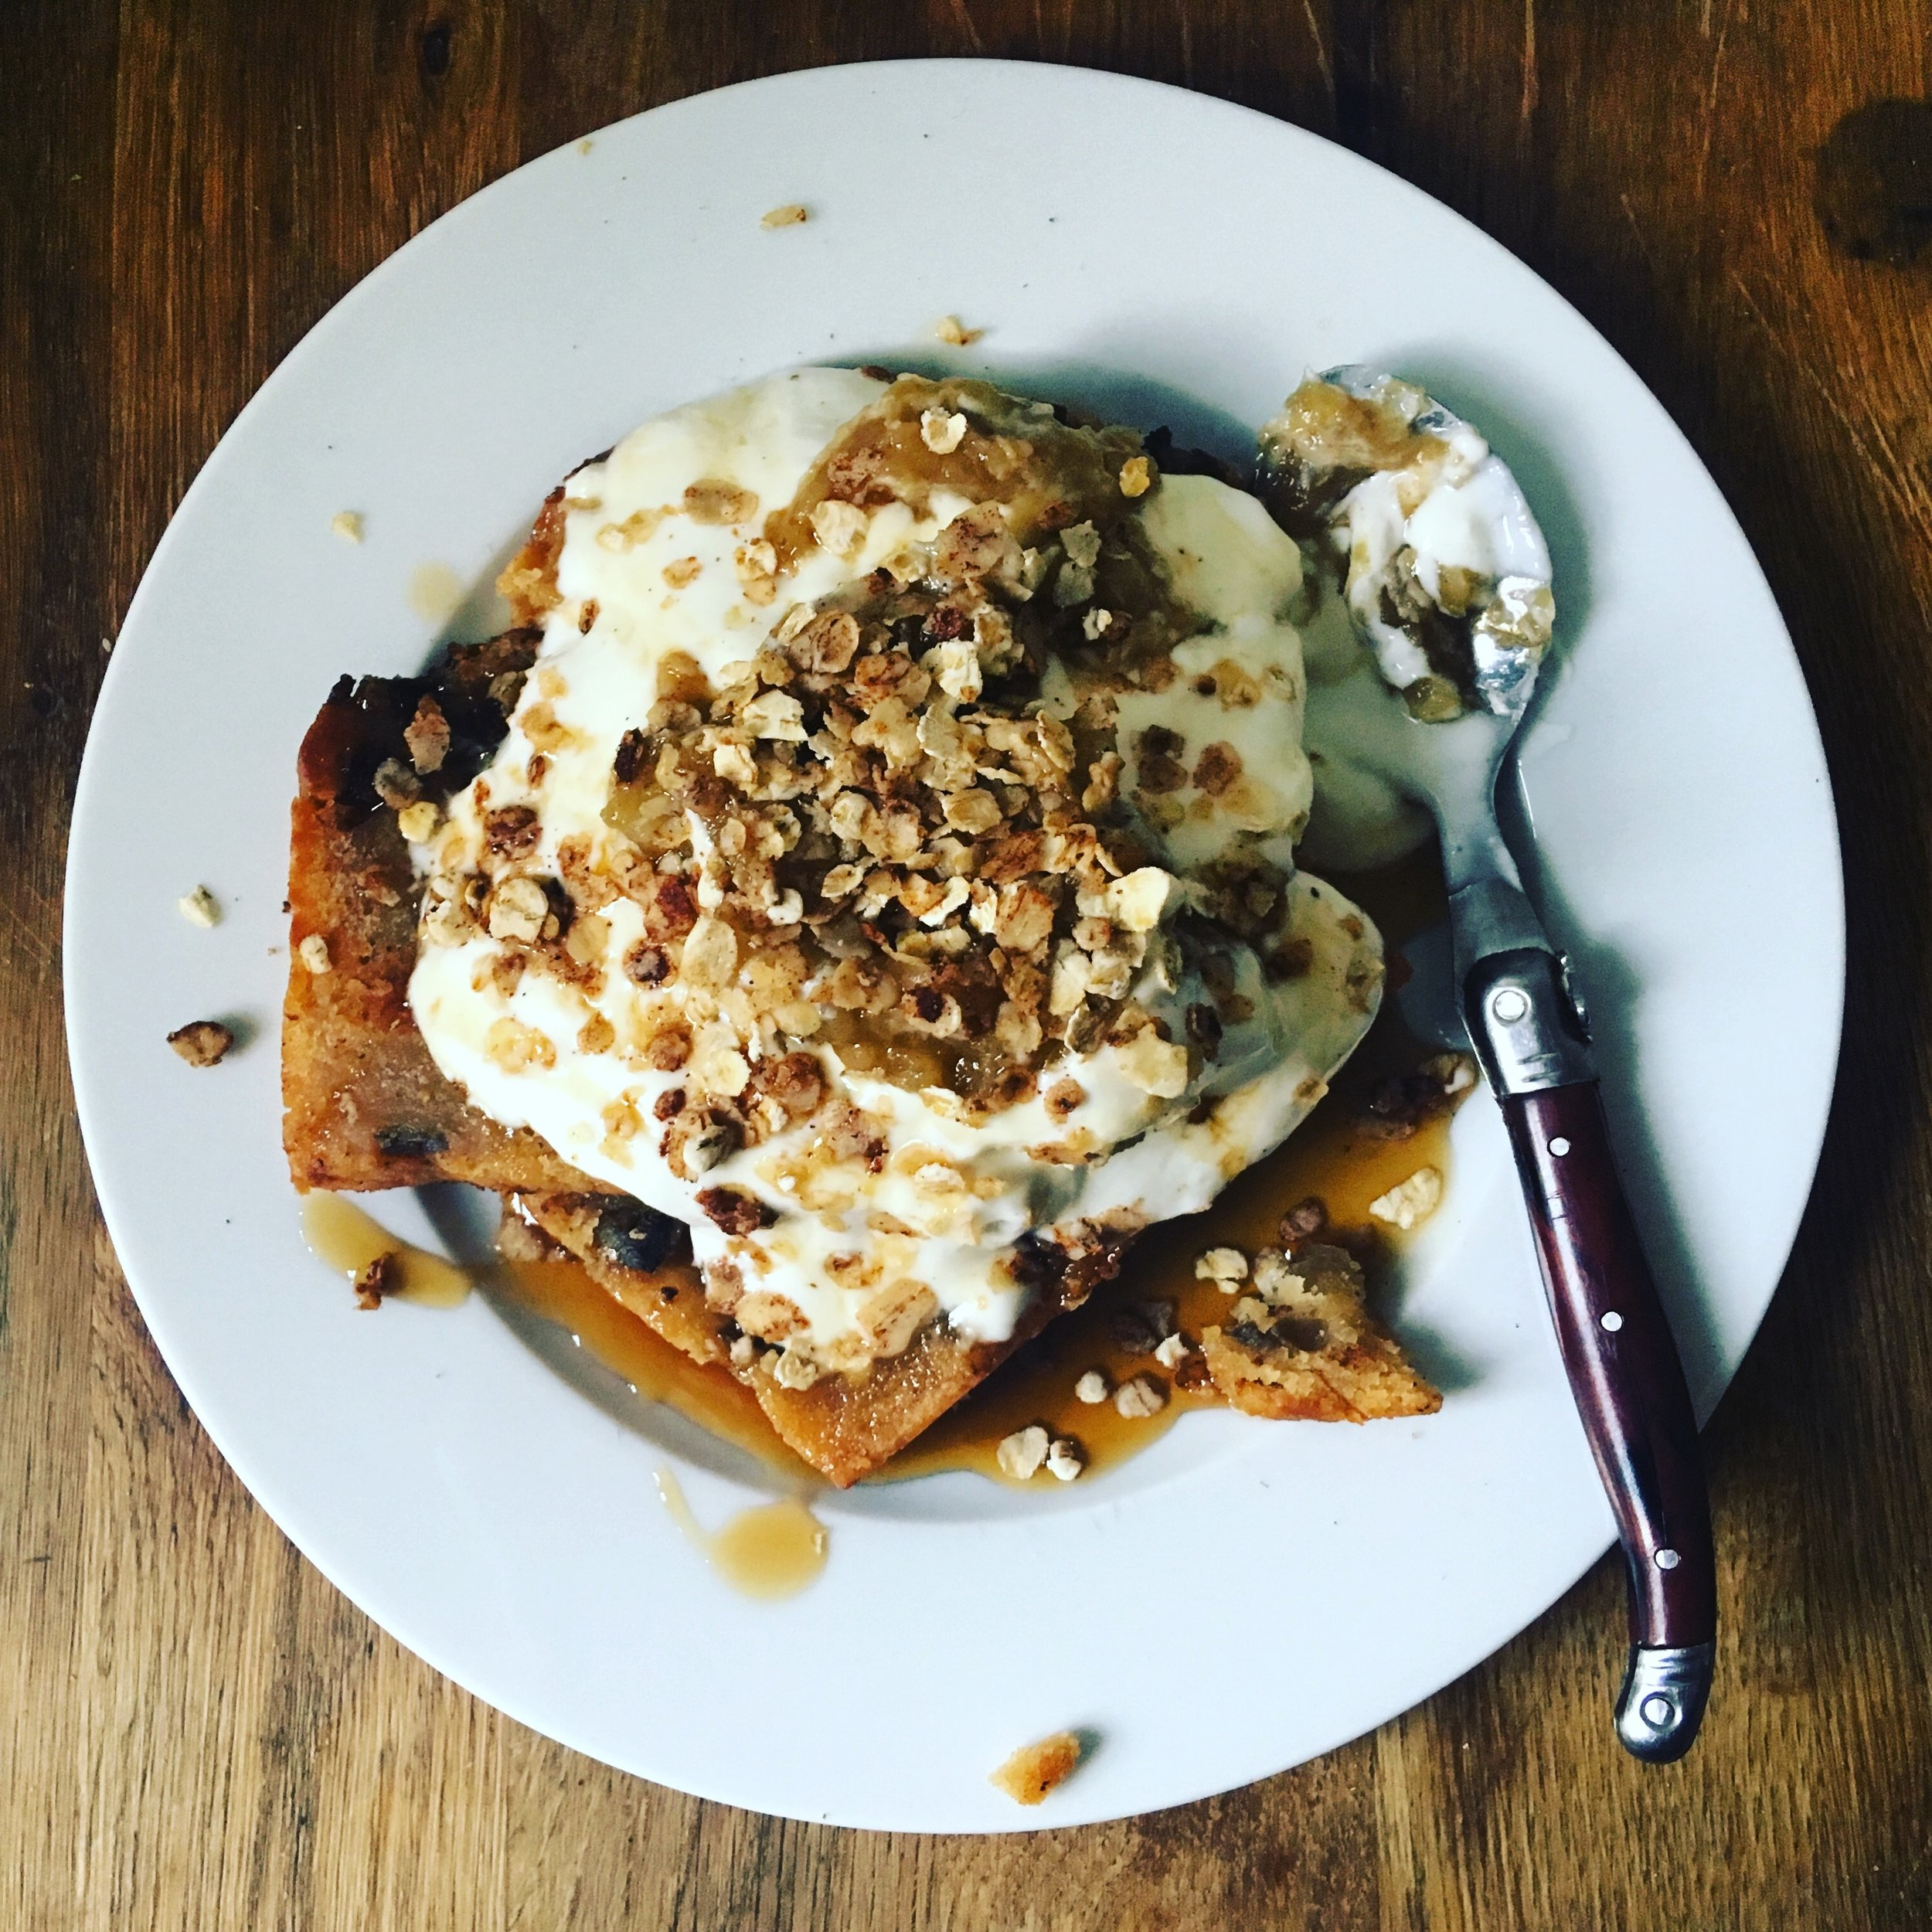 Banana Bread French Toast topped with creamy fromage blanc, maple syrup, caramelized bananas and cinnamon-toasted oats.